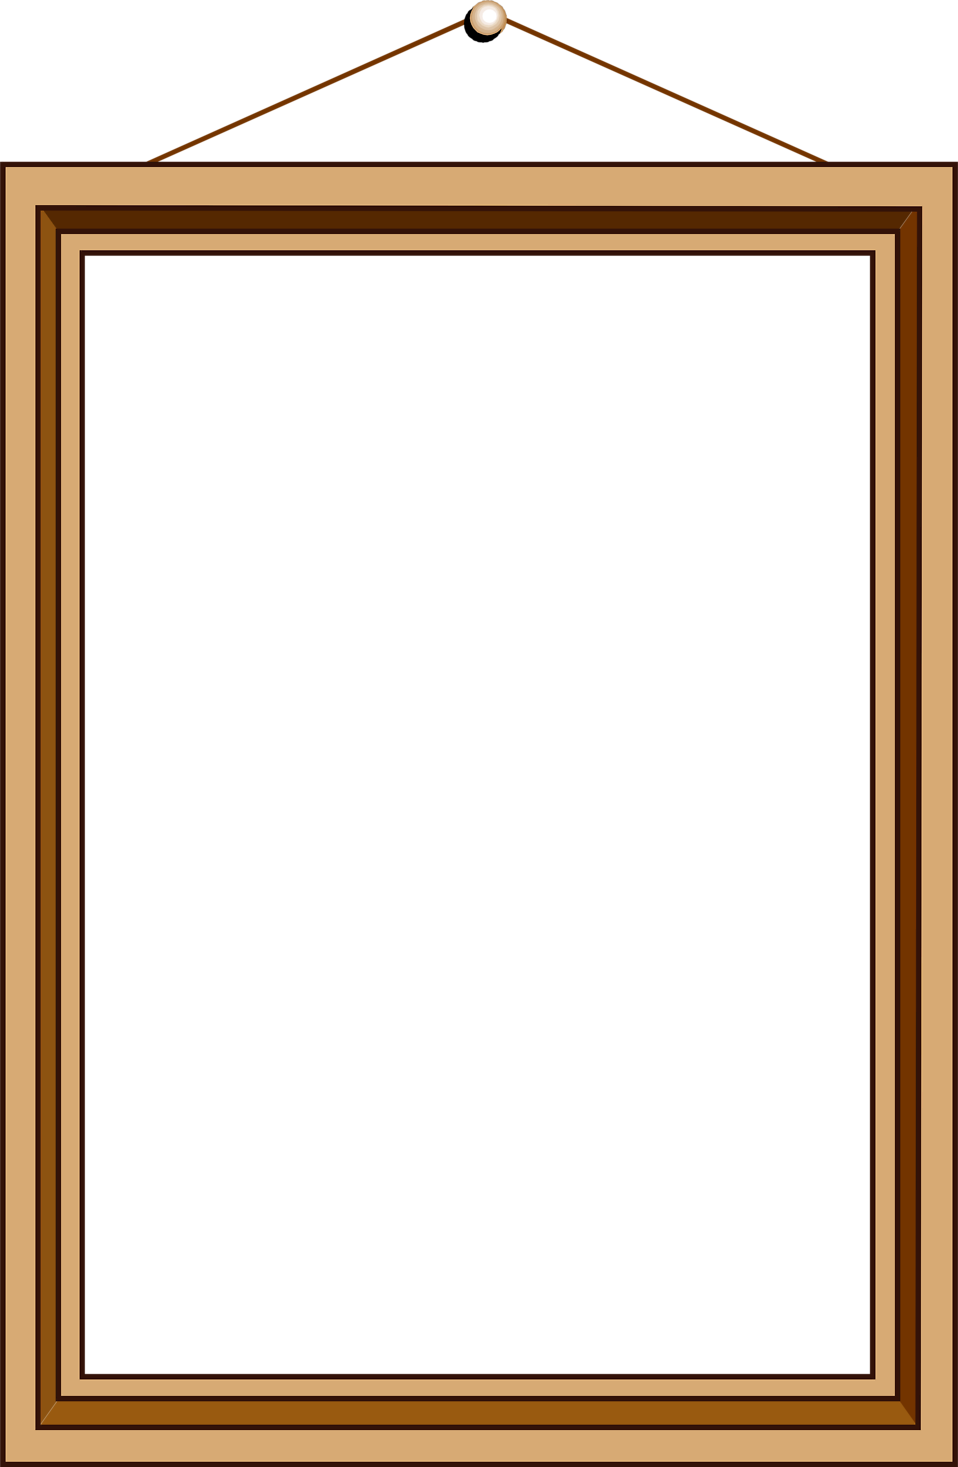 Square clipart blank square. Picture frame free stock